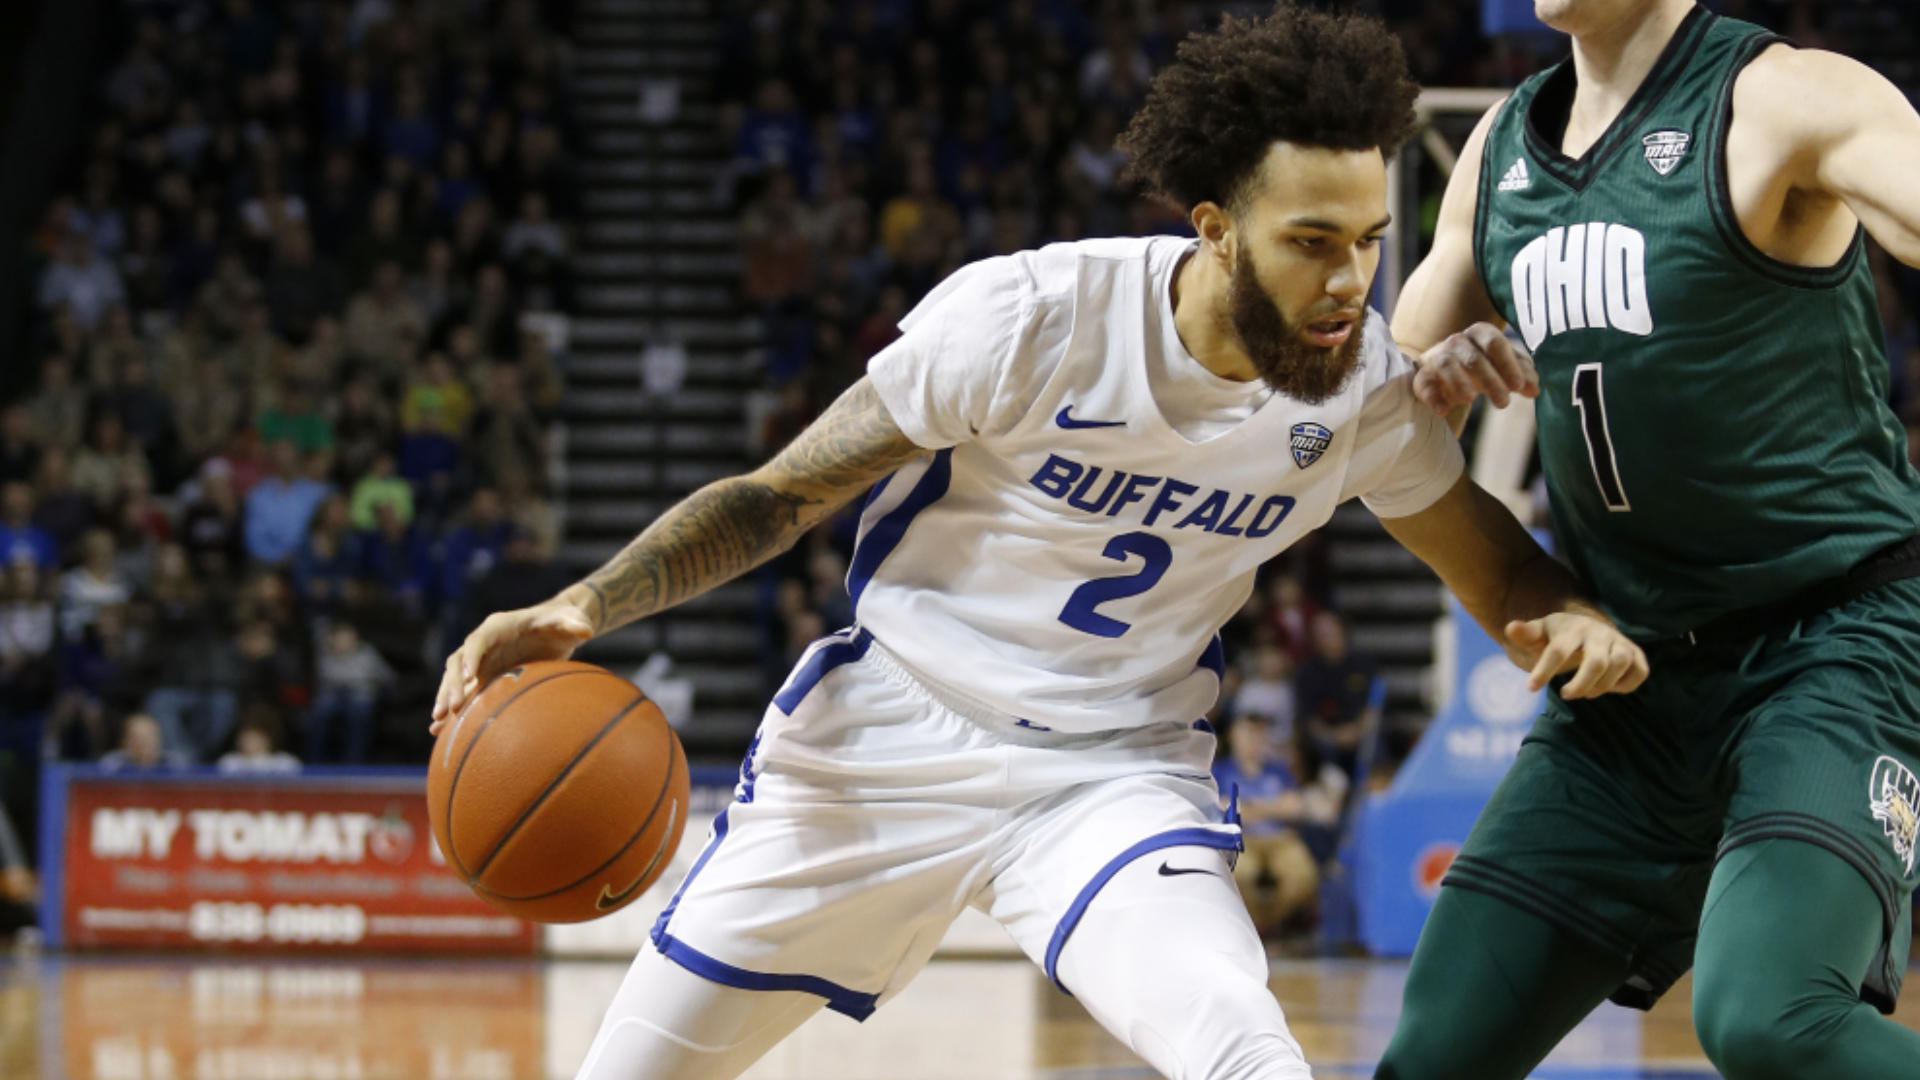 Bowling Green vs. Ohio odds, line: College basketball picks, predictions from model on 16-8 run